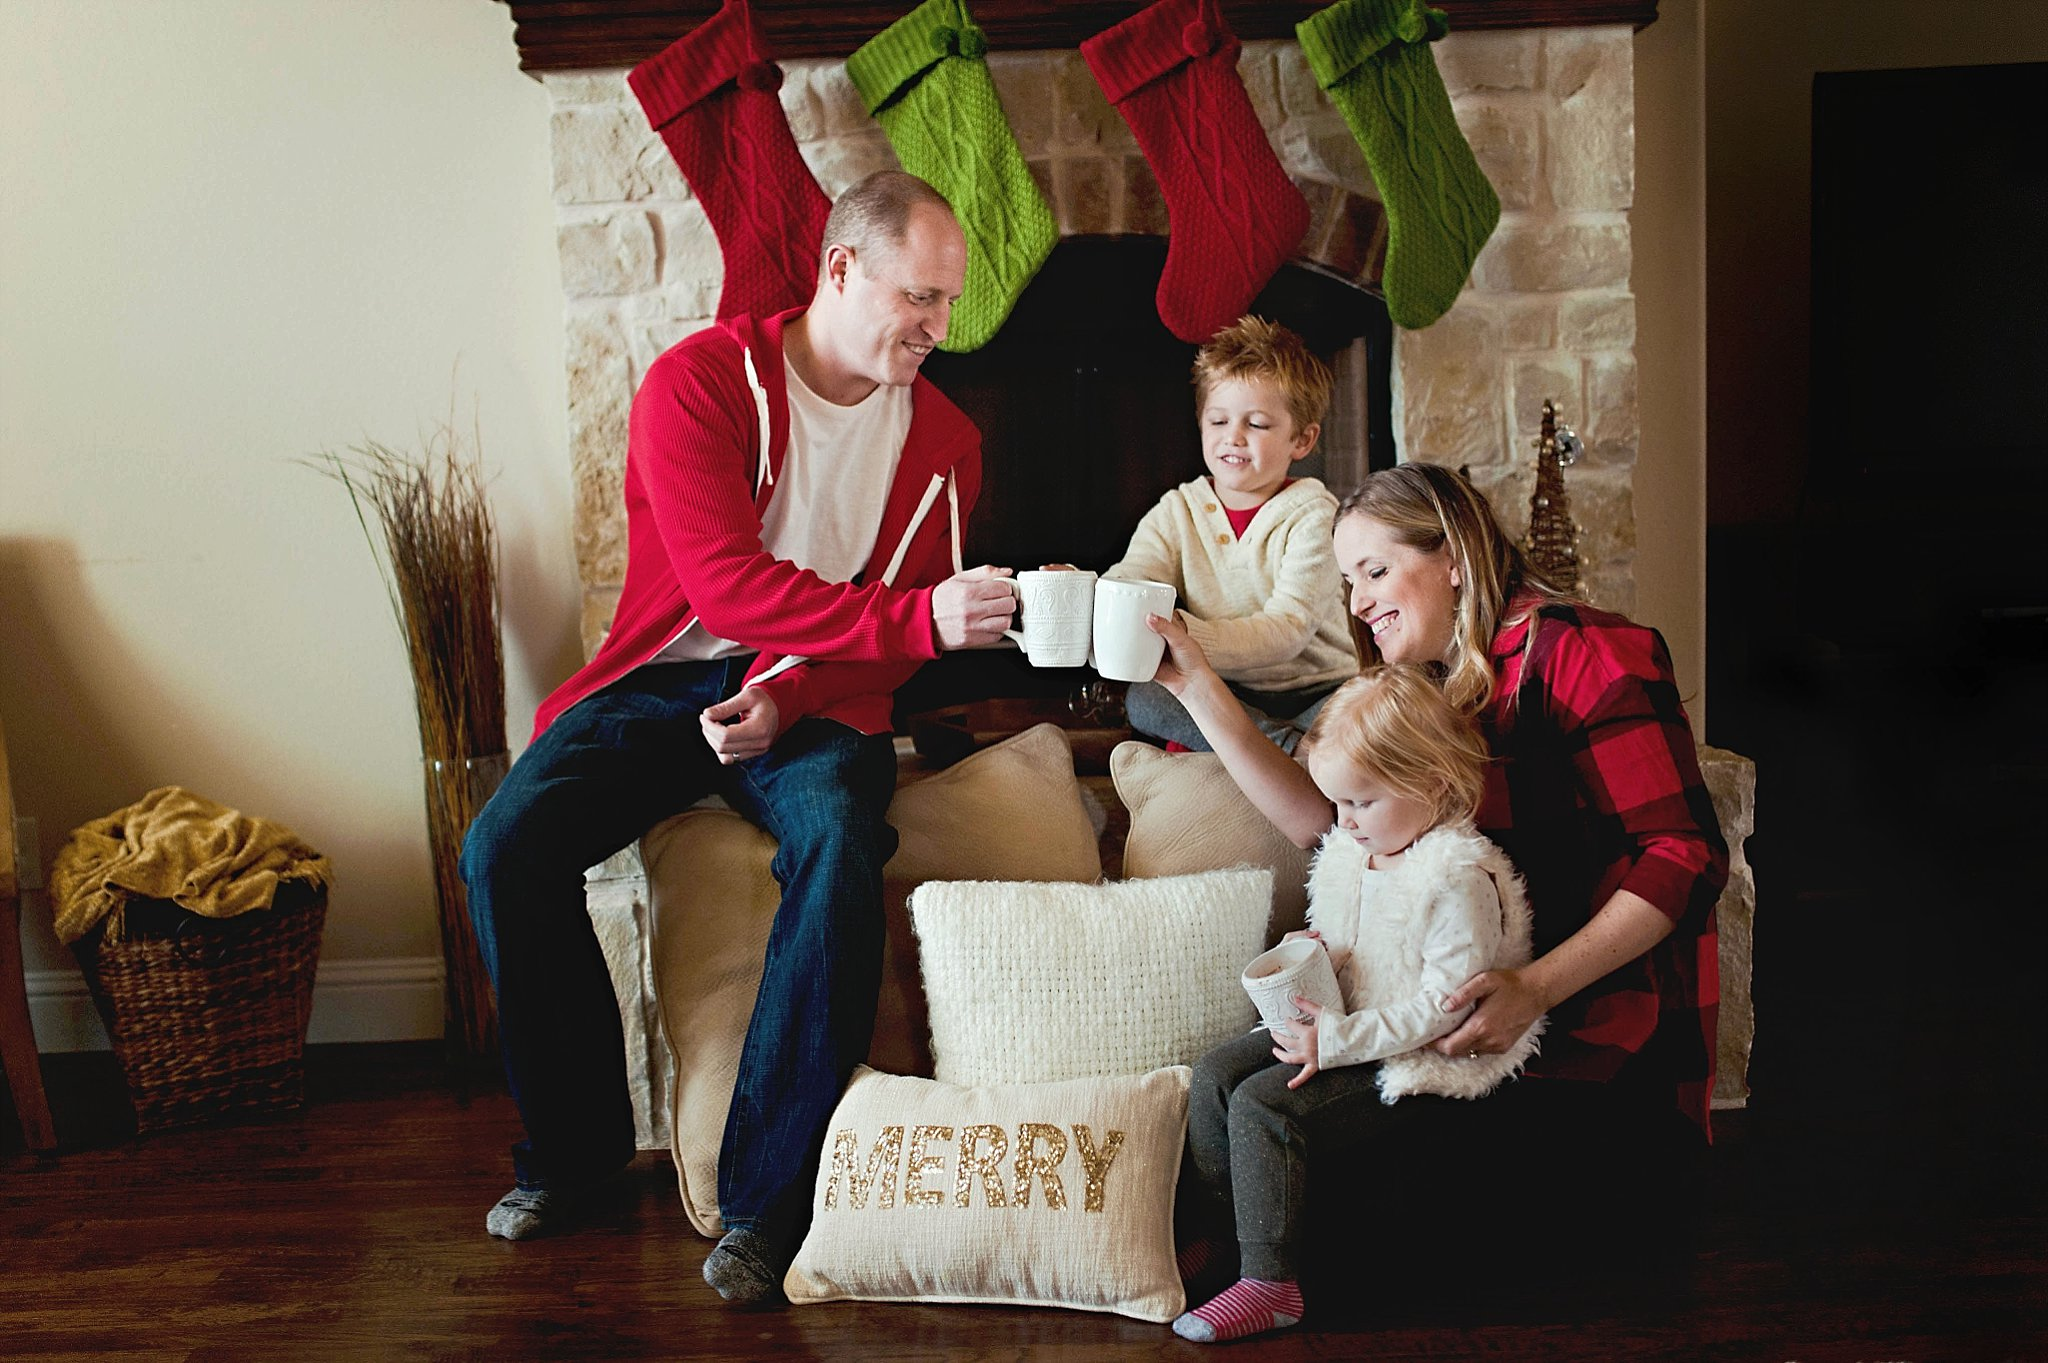 family Christmas photo by a fireplace by Erica Williams